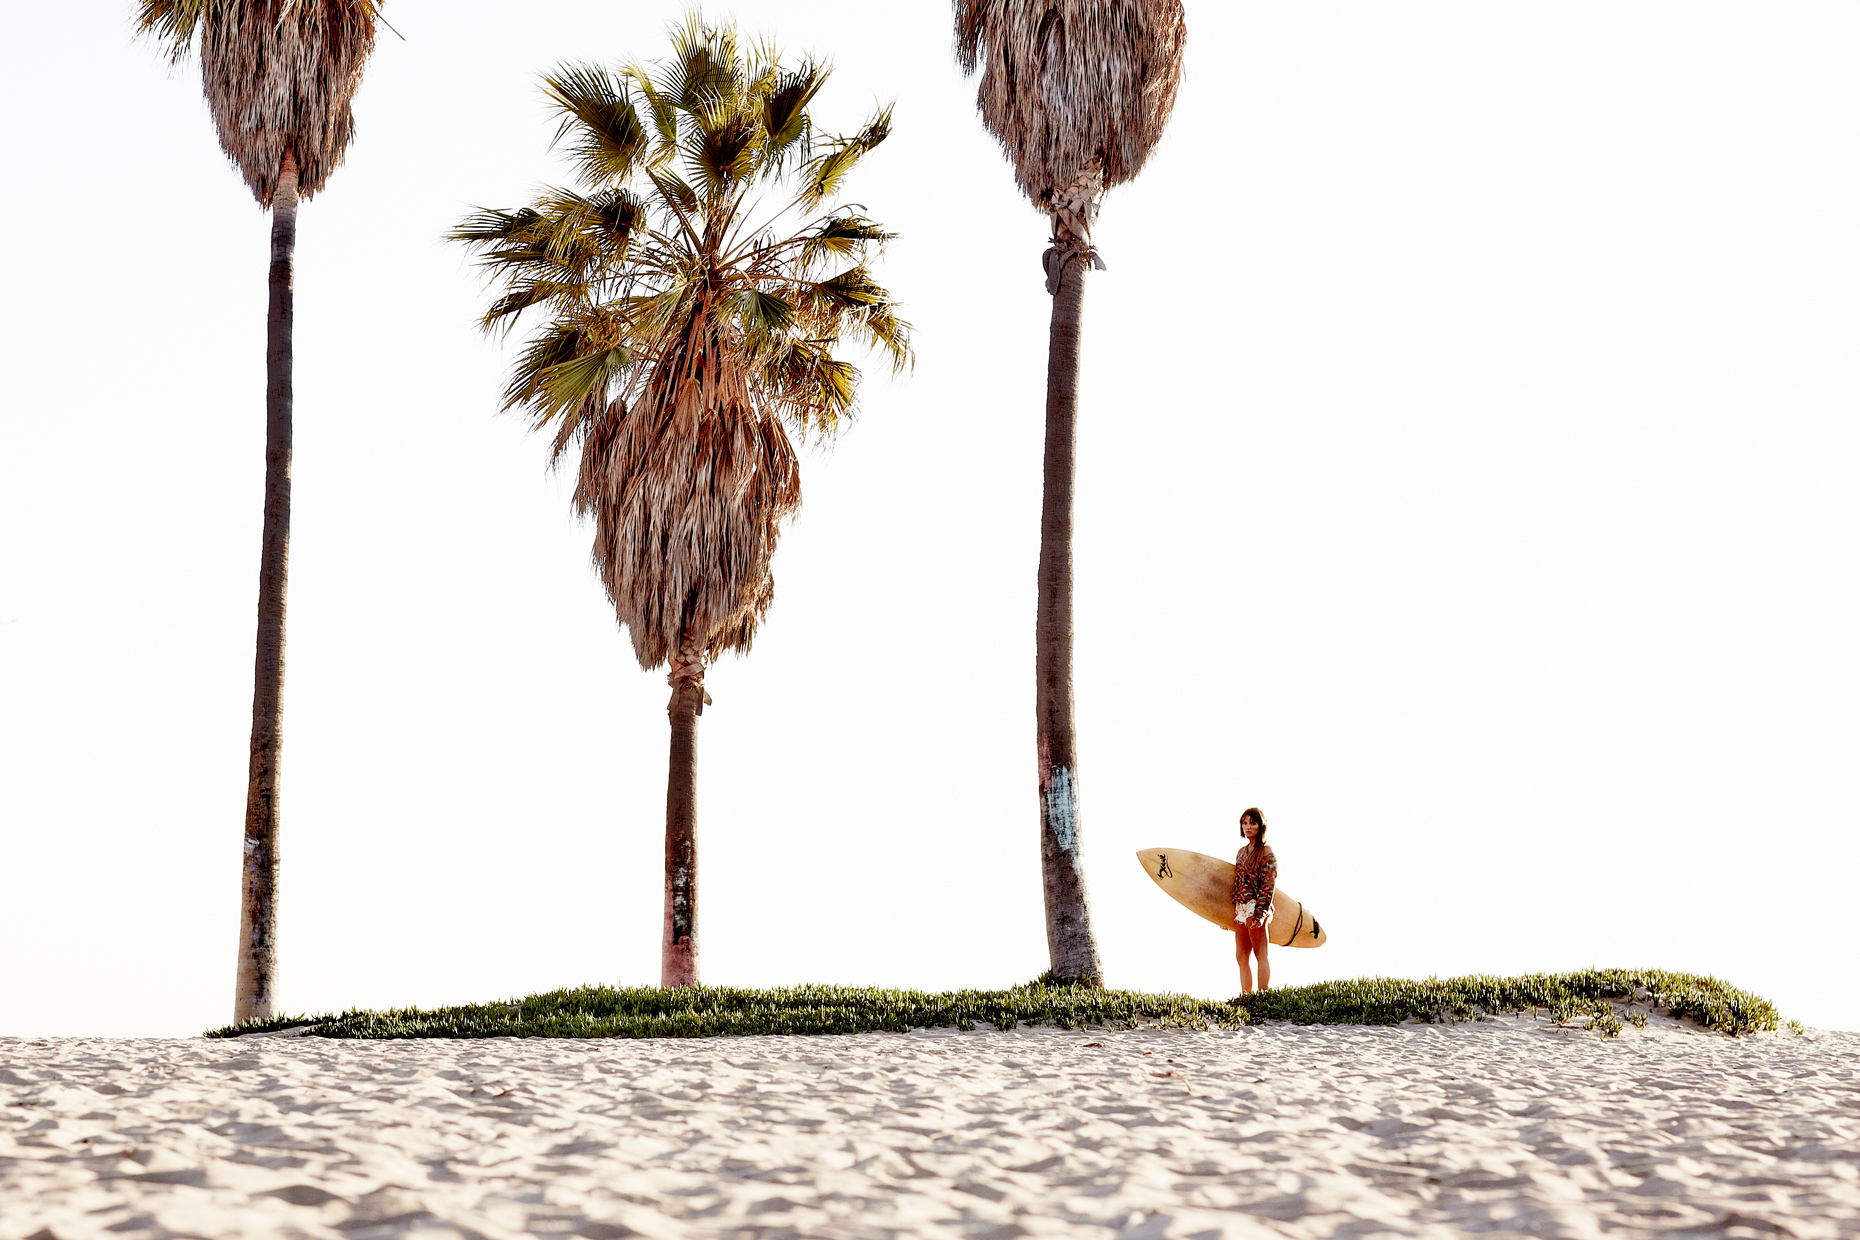 130212__Chelsea_Sartain_Surfer-0001-John-Duarte_Venice-Beach_Girl_Women_Surf_Surfing_Sunset_swimsuit_web-DUP.jpg